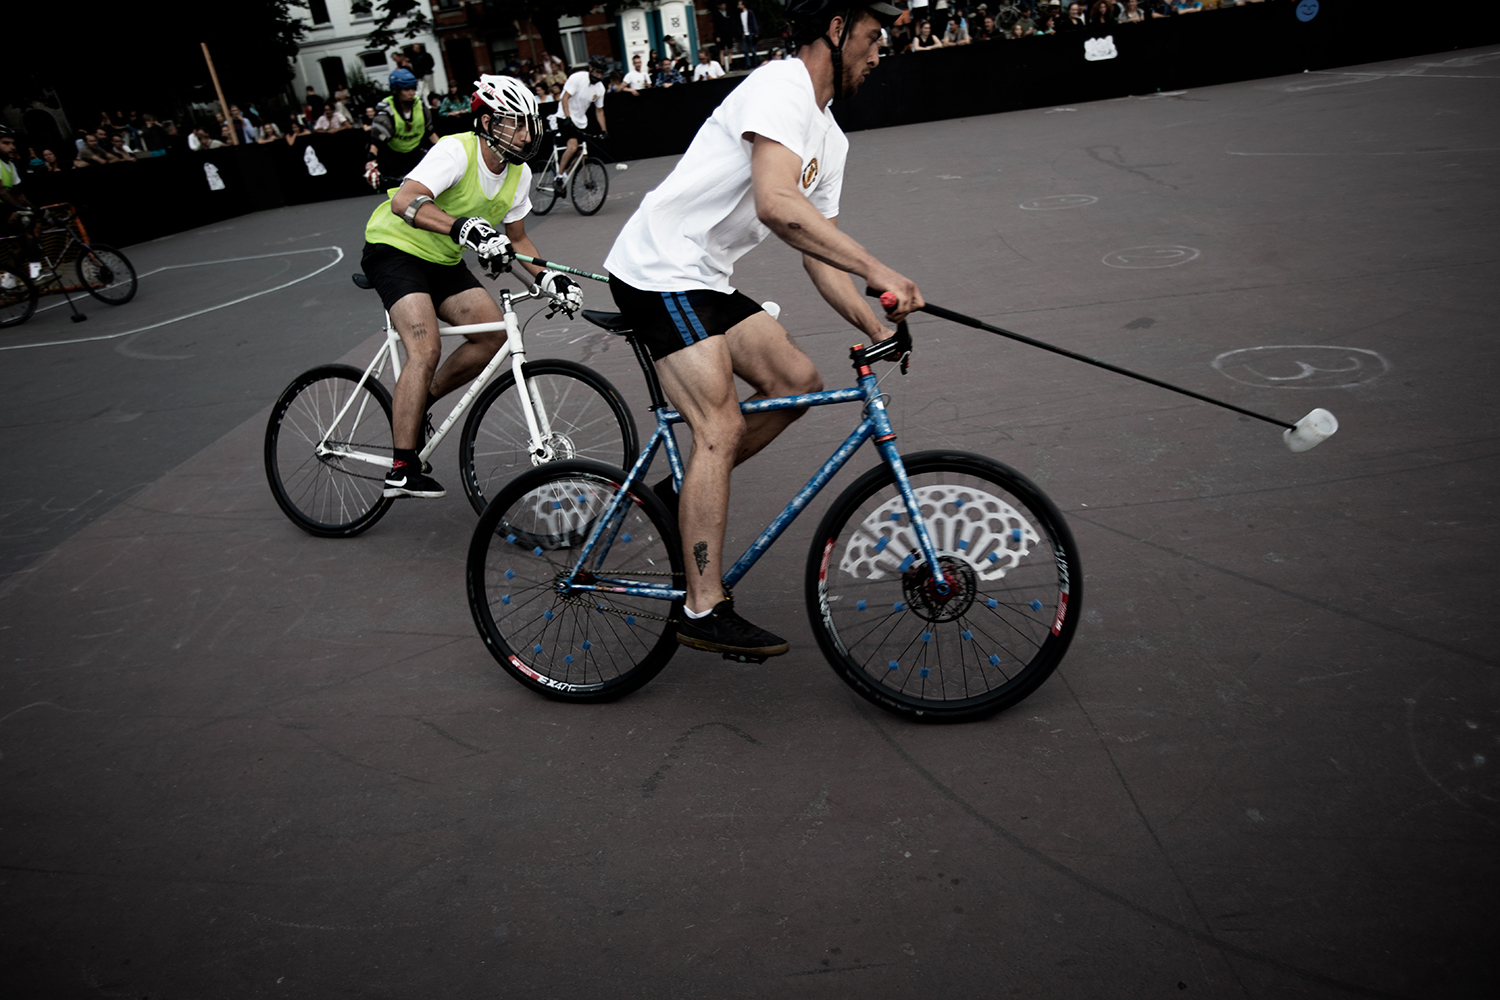 Brussels Bike Polo - Le Grand Royal 10 - 2021 by Laurent Orseau #10